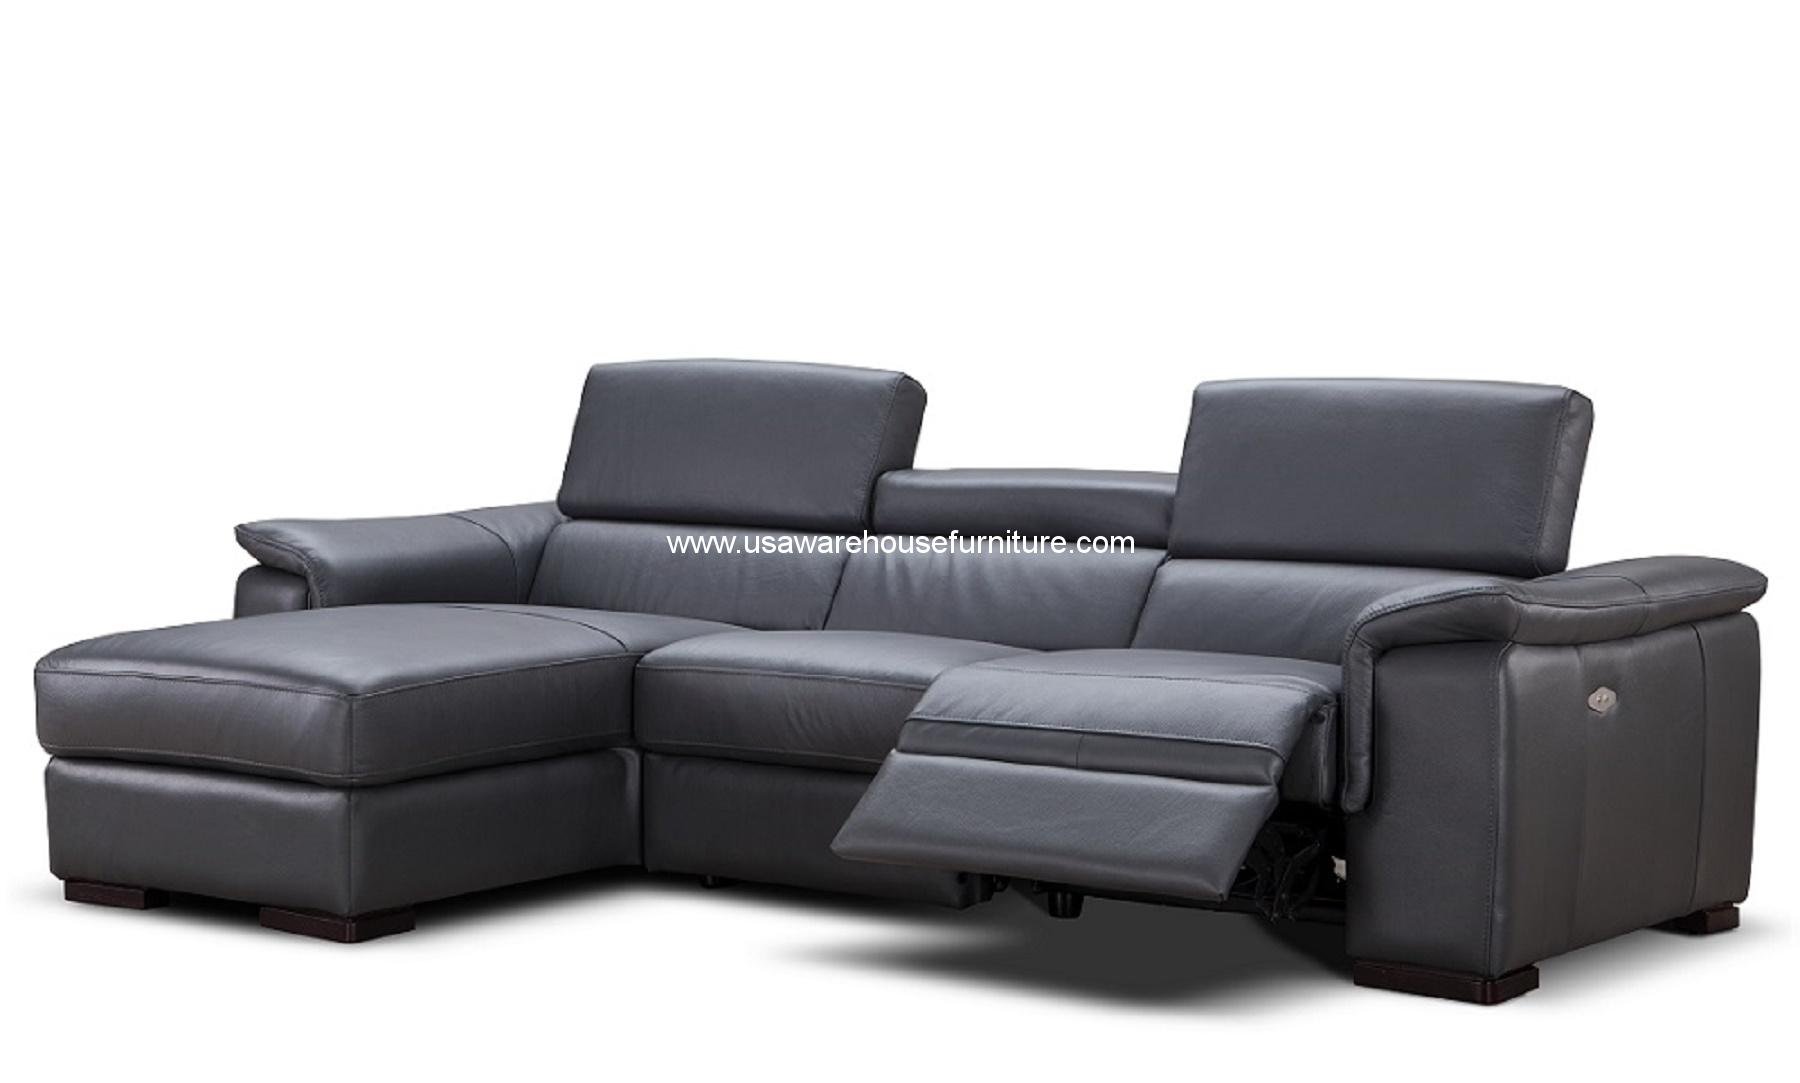 Reclining leather sectional sofa Home furniture usa nj